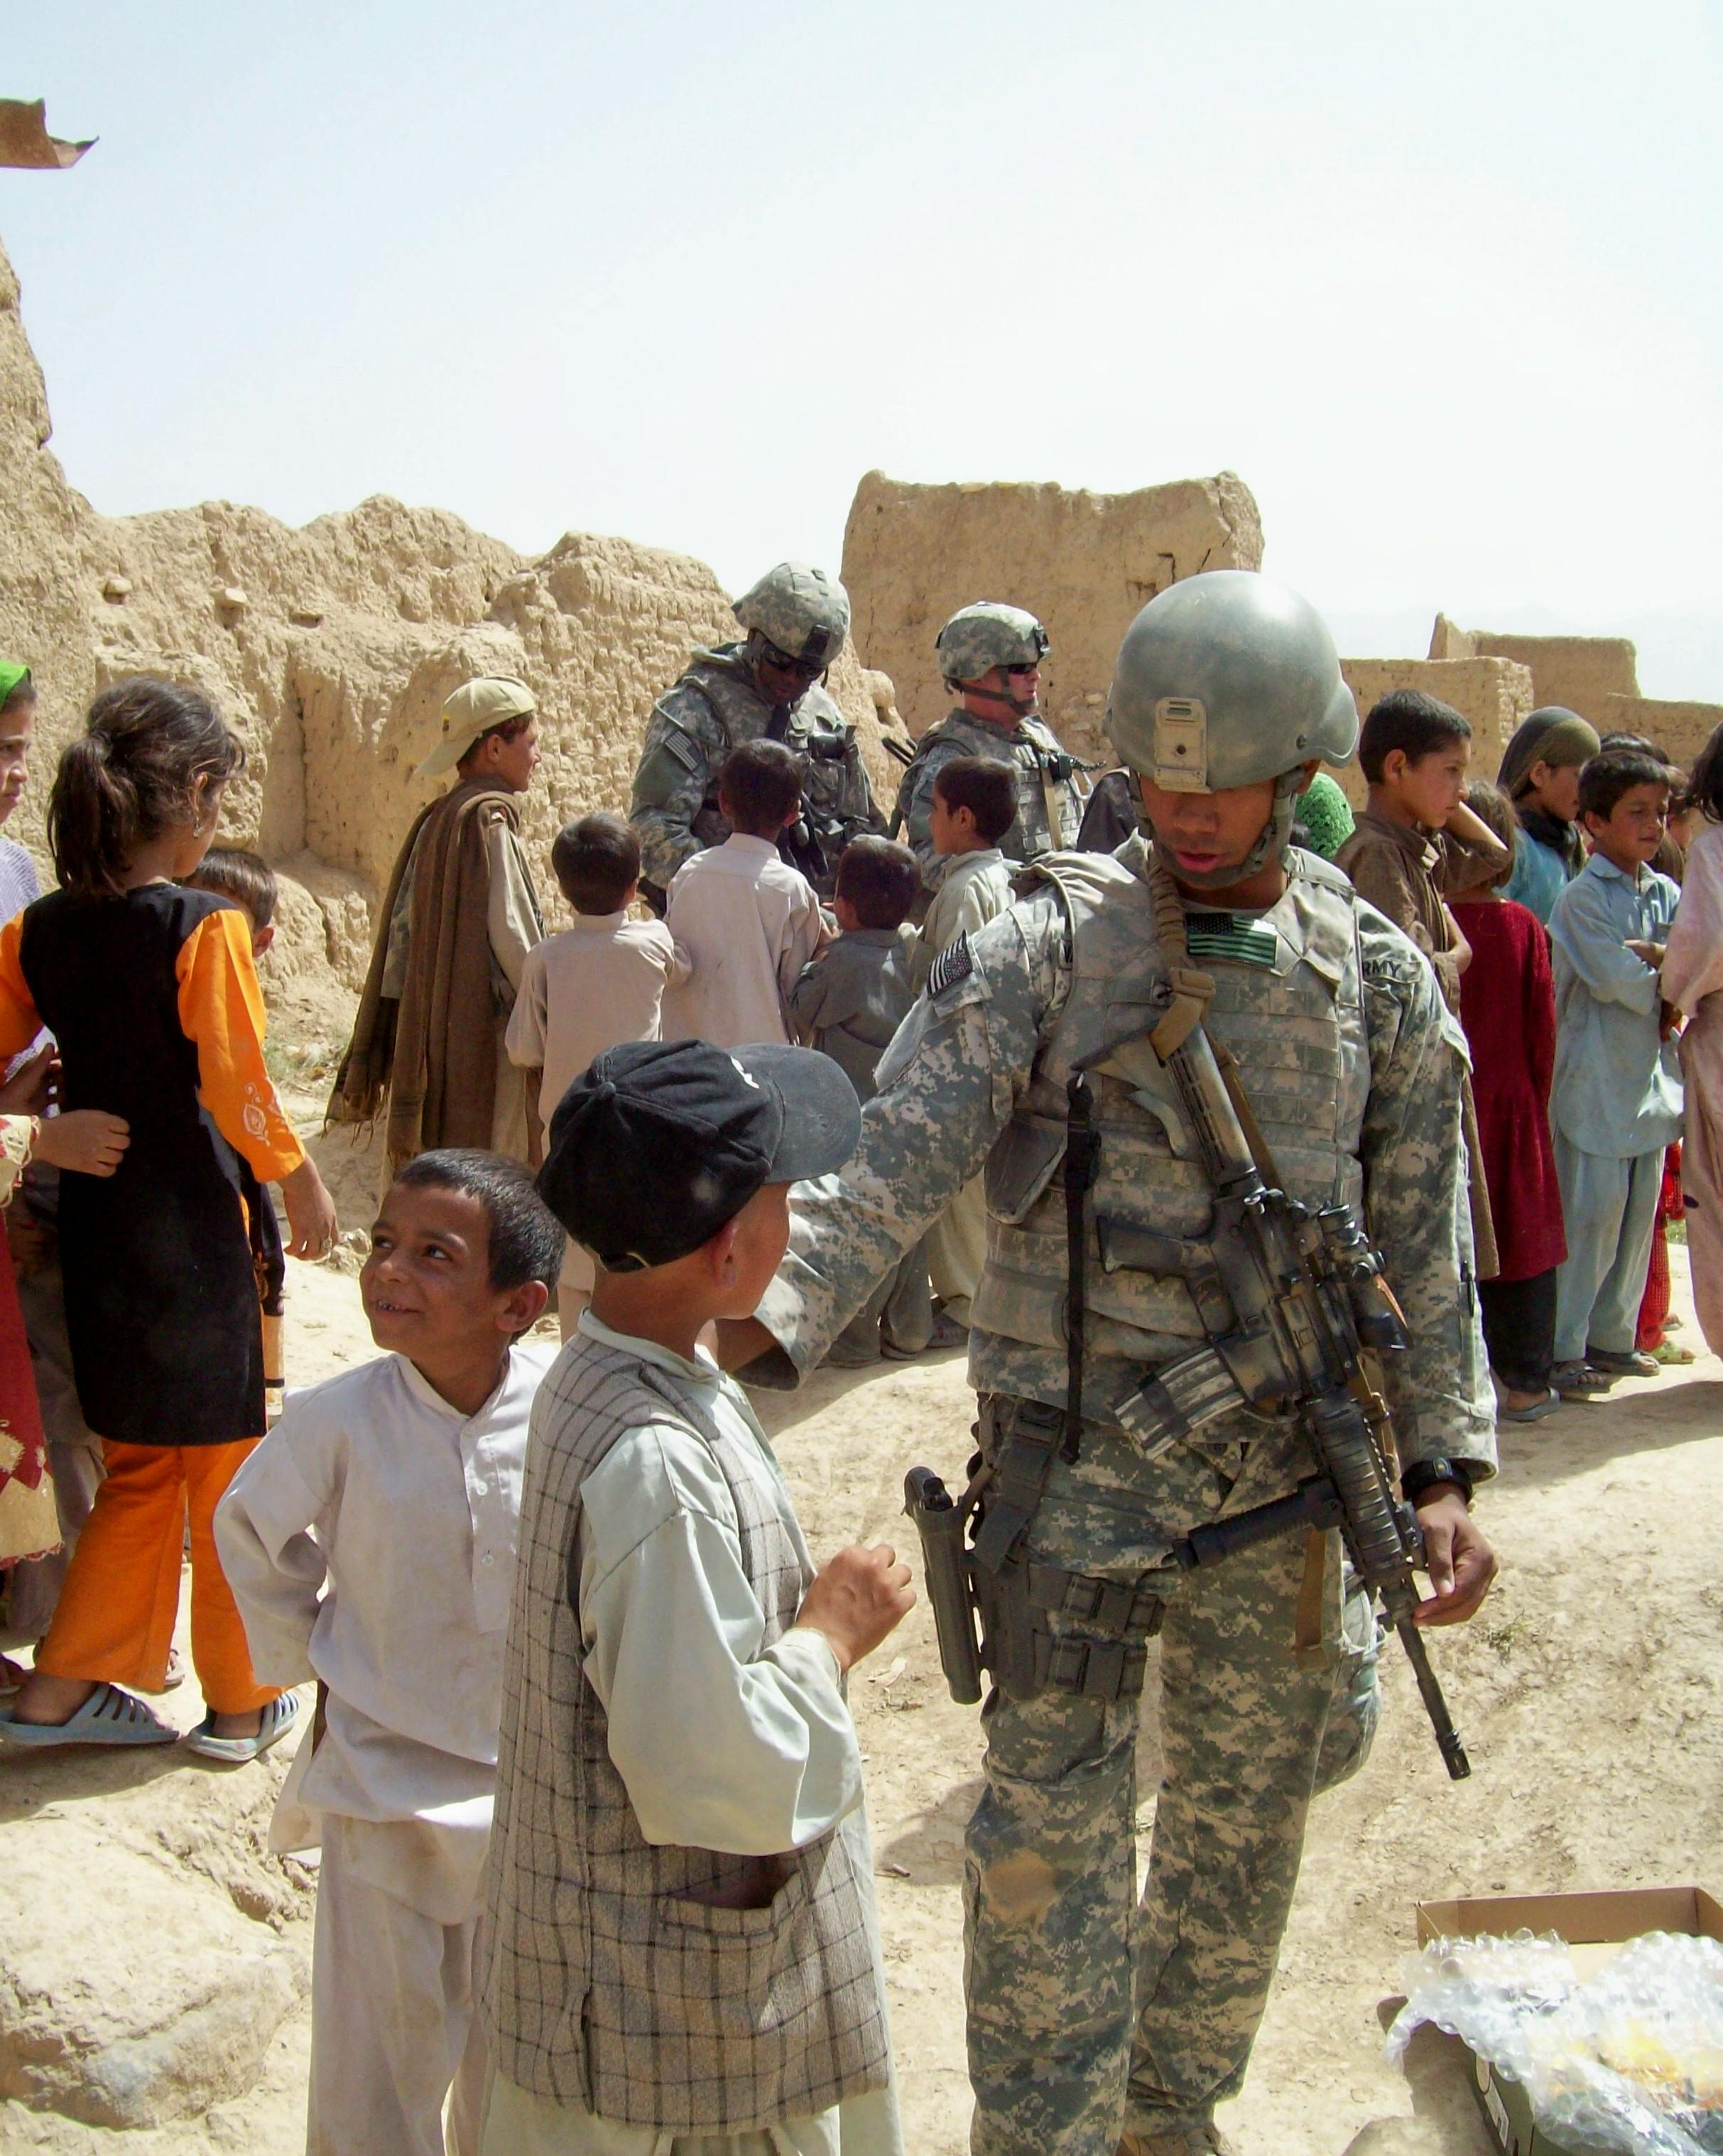 New%20York%20Security%20Force%20Soldiers%20Aid%20Afghan%20Villagers